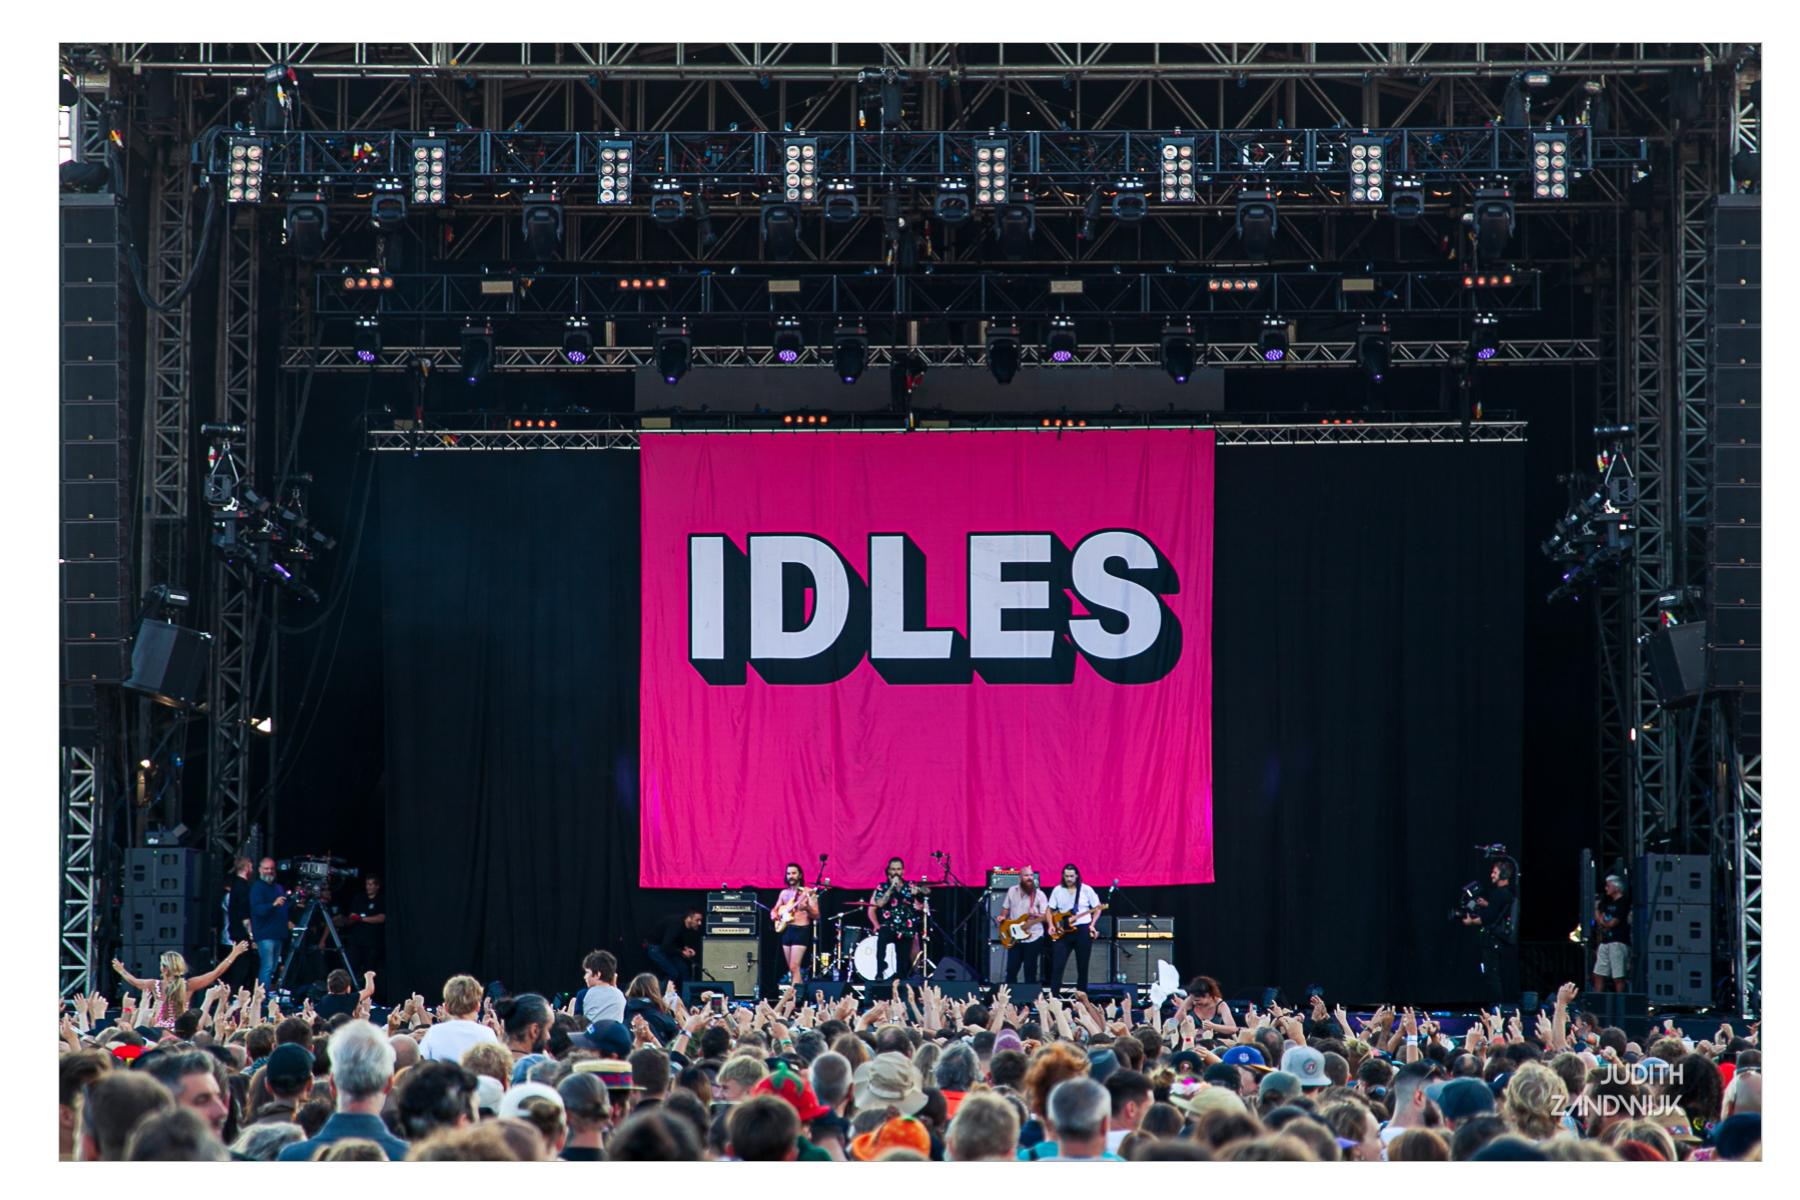 IDLES-31-08-2019 The Downs Bristol-ATL-@Judith Zandwijk 01 (5)